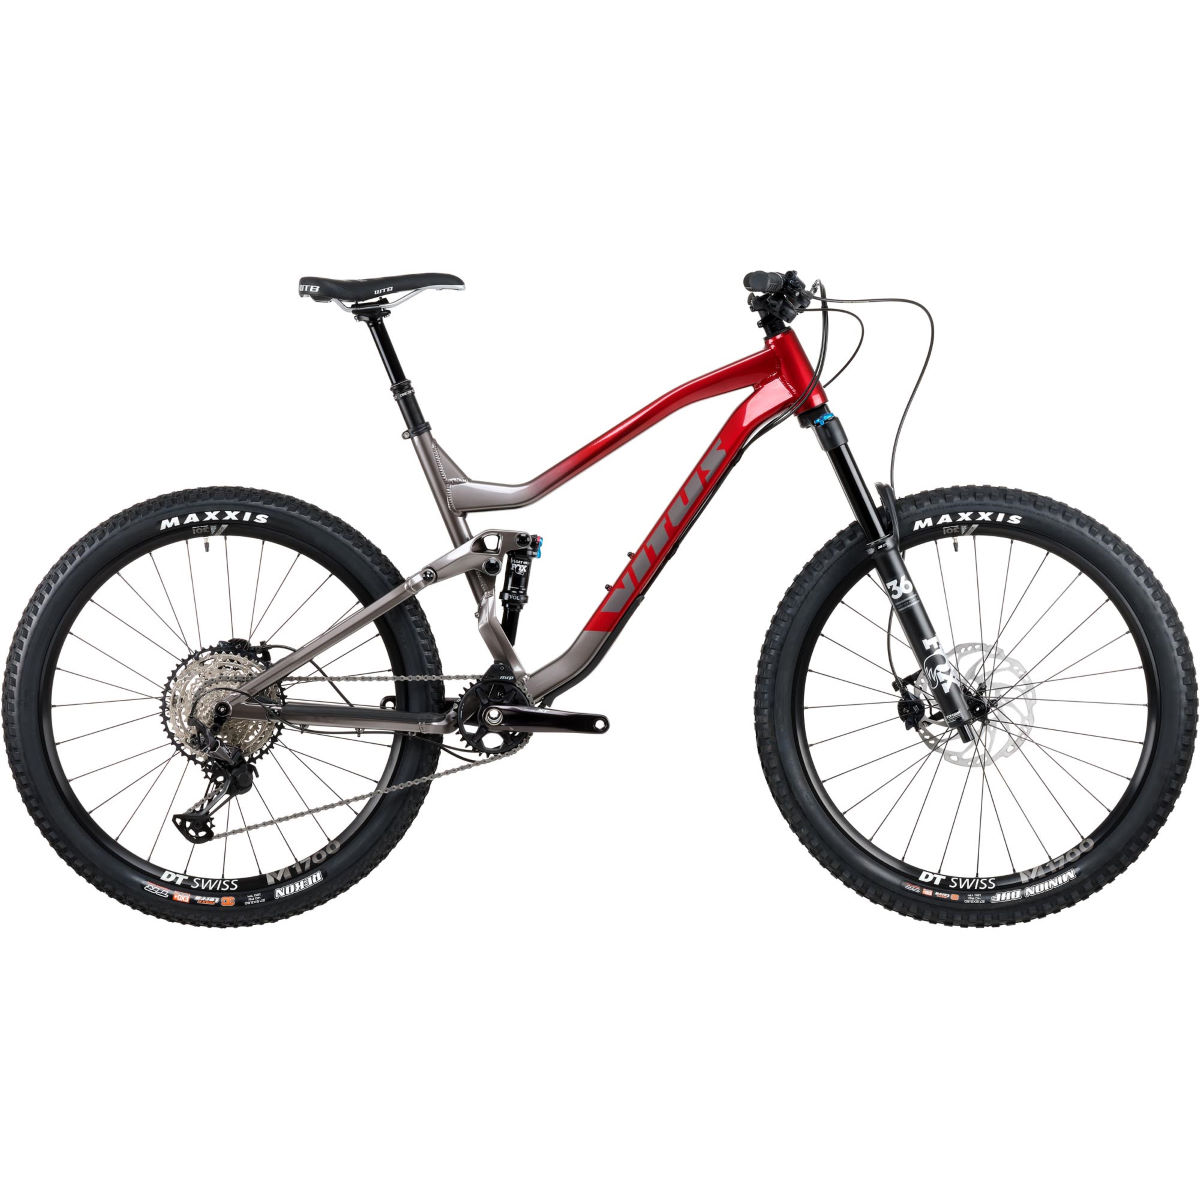 Vitus Vitus Escarpe 27 VRS Bike (SLX 1x12 - 2020)   Full Suspension Mountain Bikes